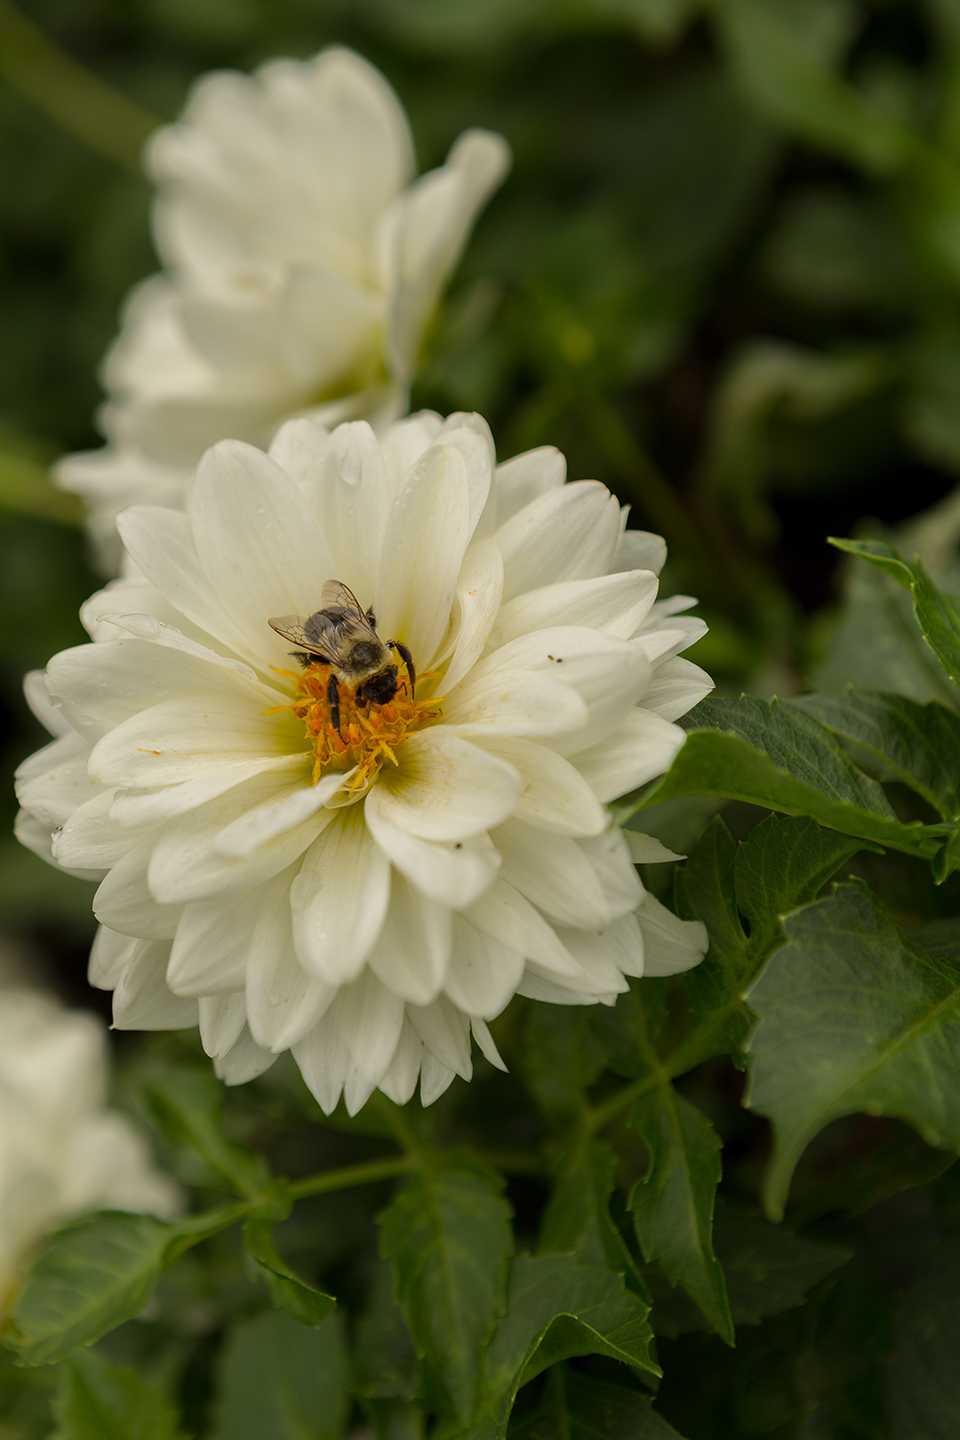 White-Dahlia-with-Insect-2.jpg